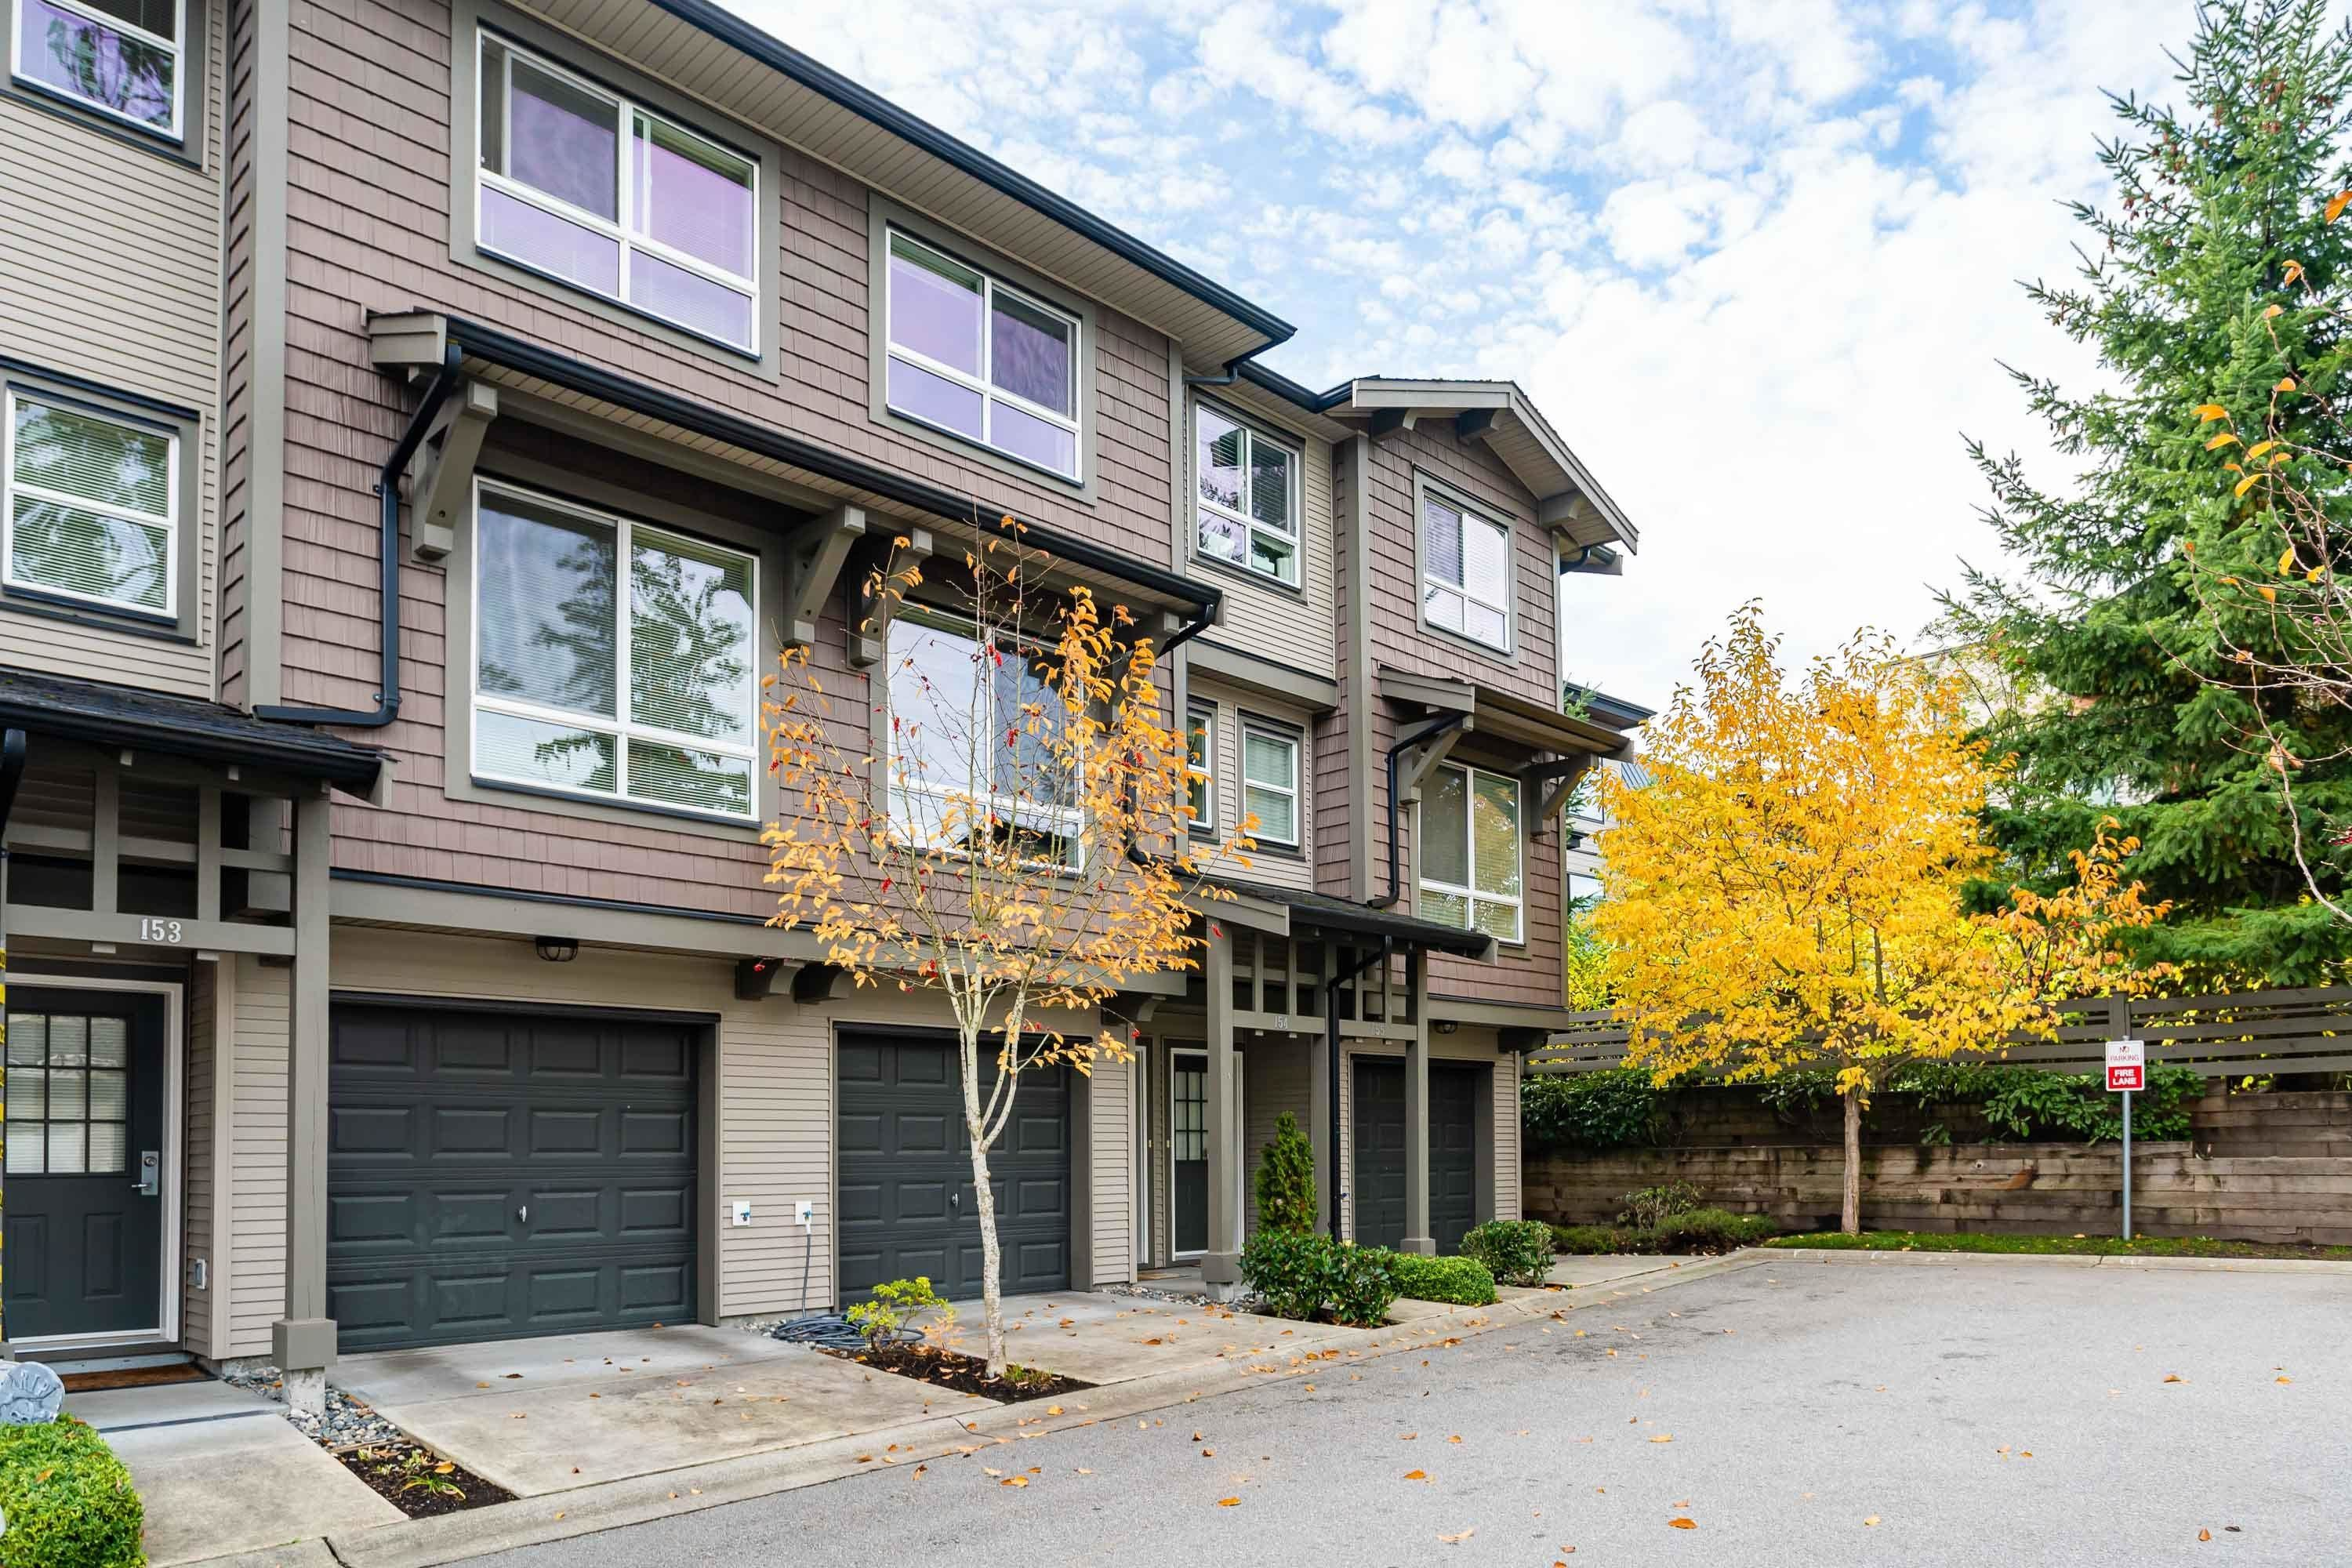 154 2729 158 STREET - Grandview Surrey Townhouse for sale, 3 Bedrooms (R2628724)